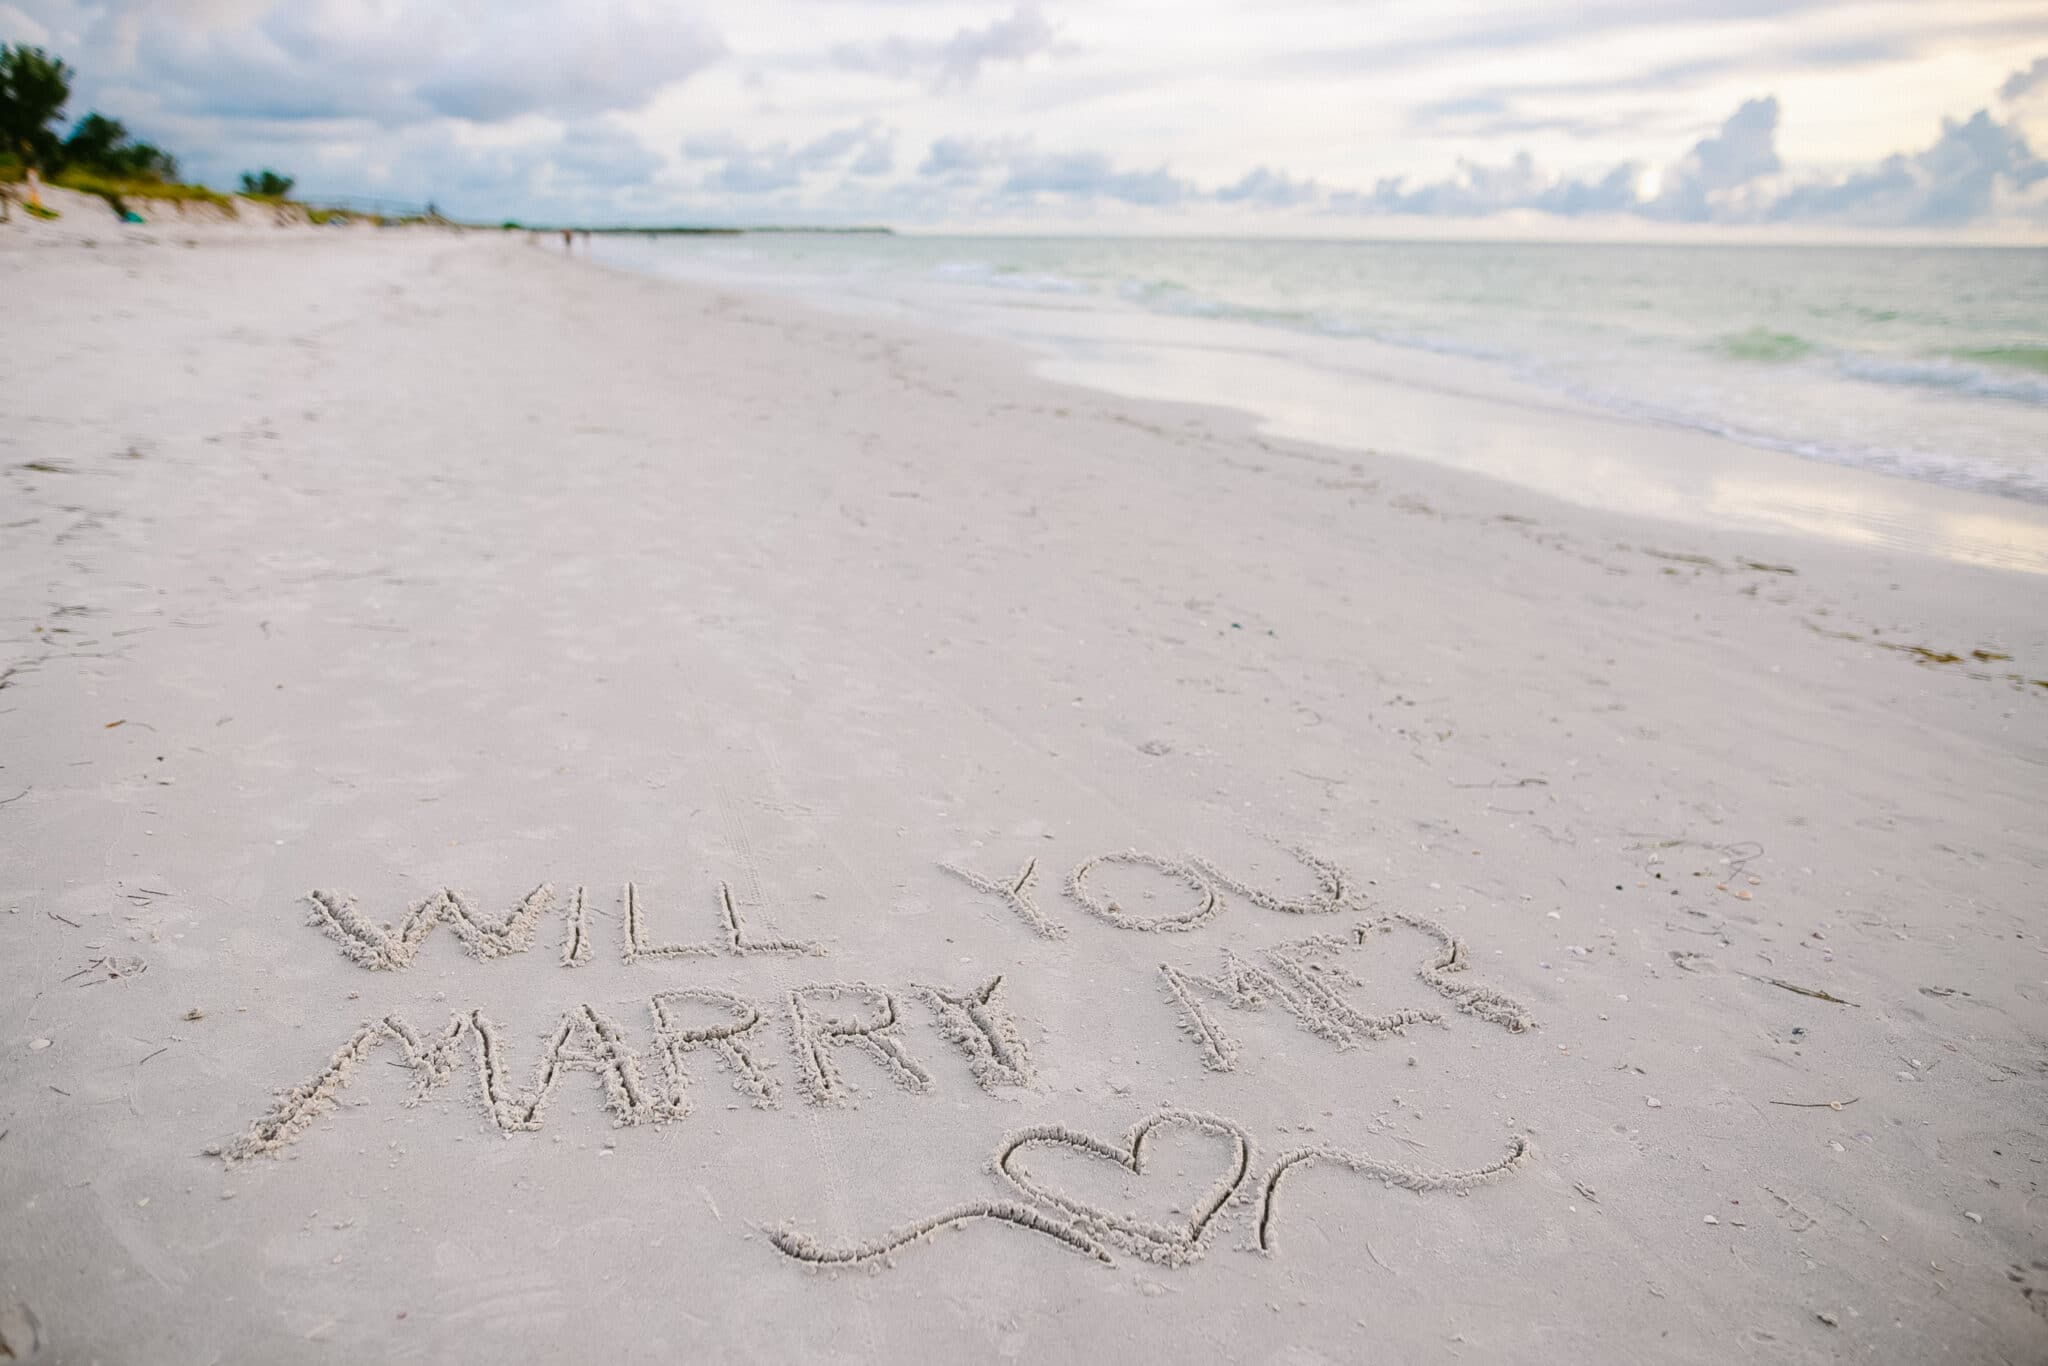 will you marry me written in the sand on the beach for the sunset at the beach marriage proposal.